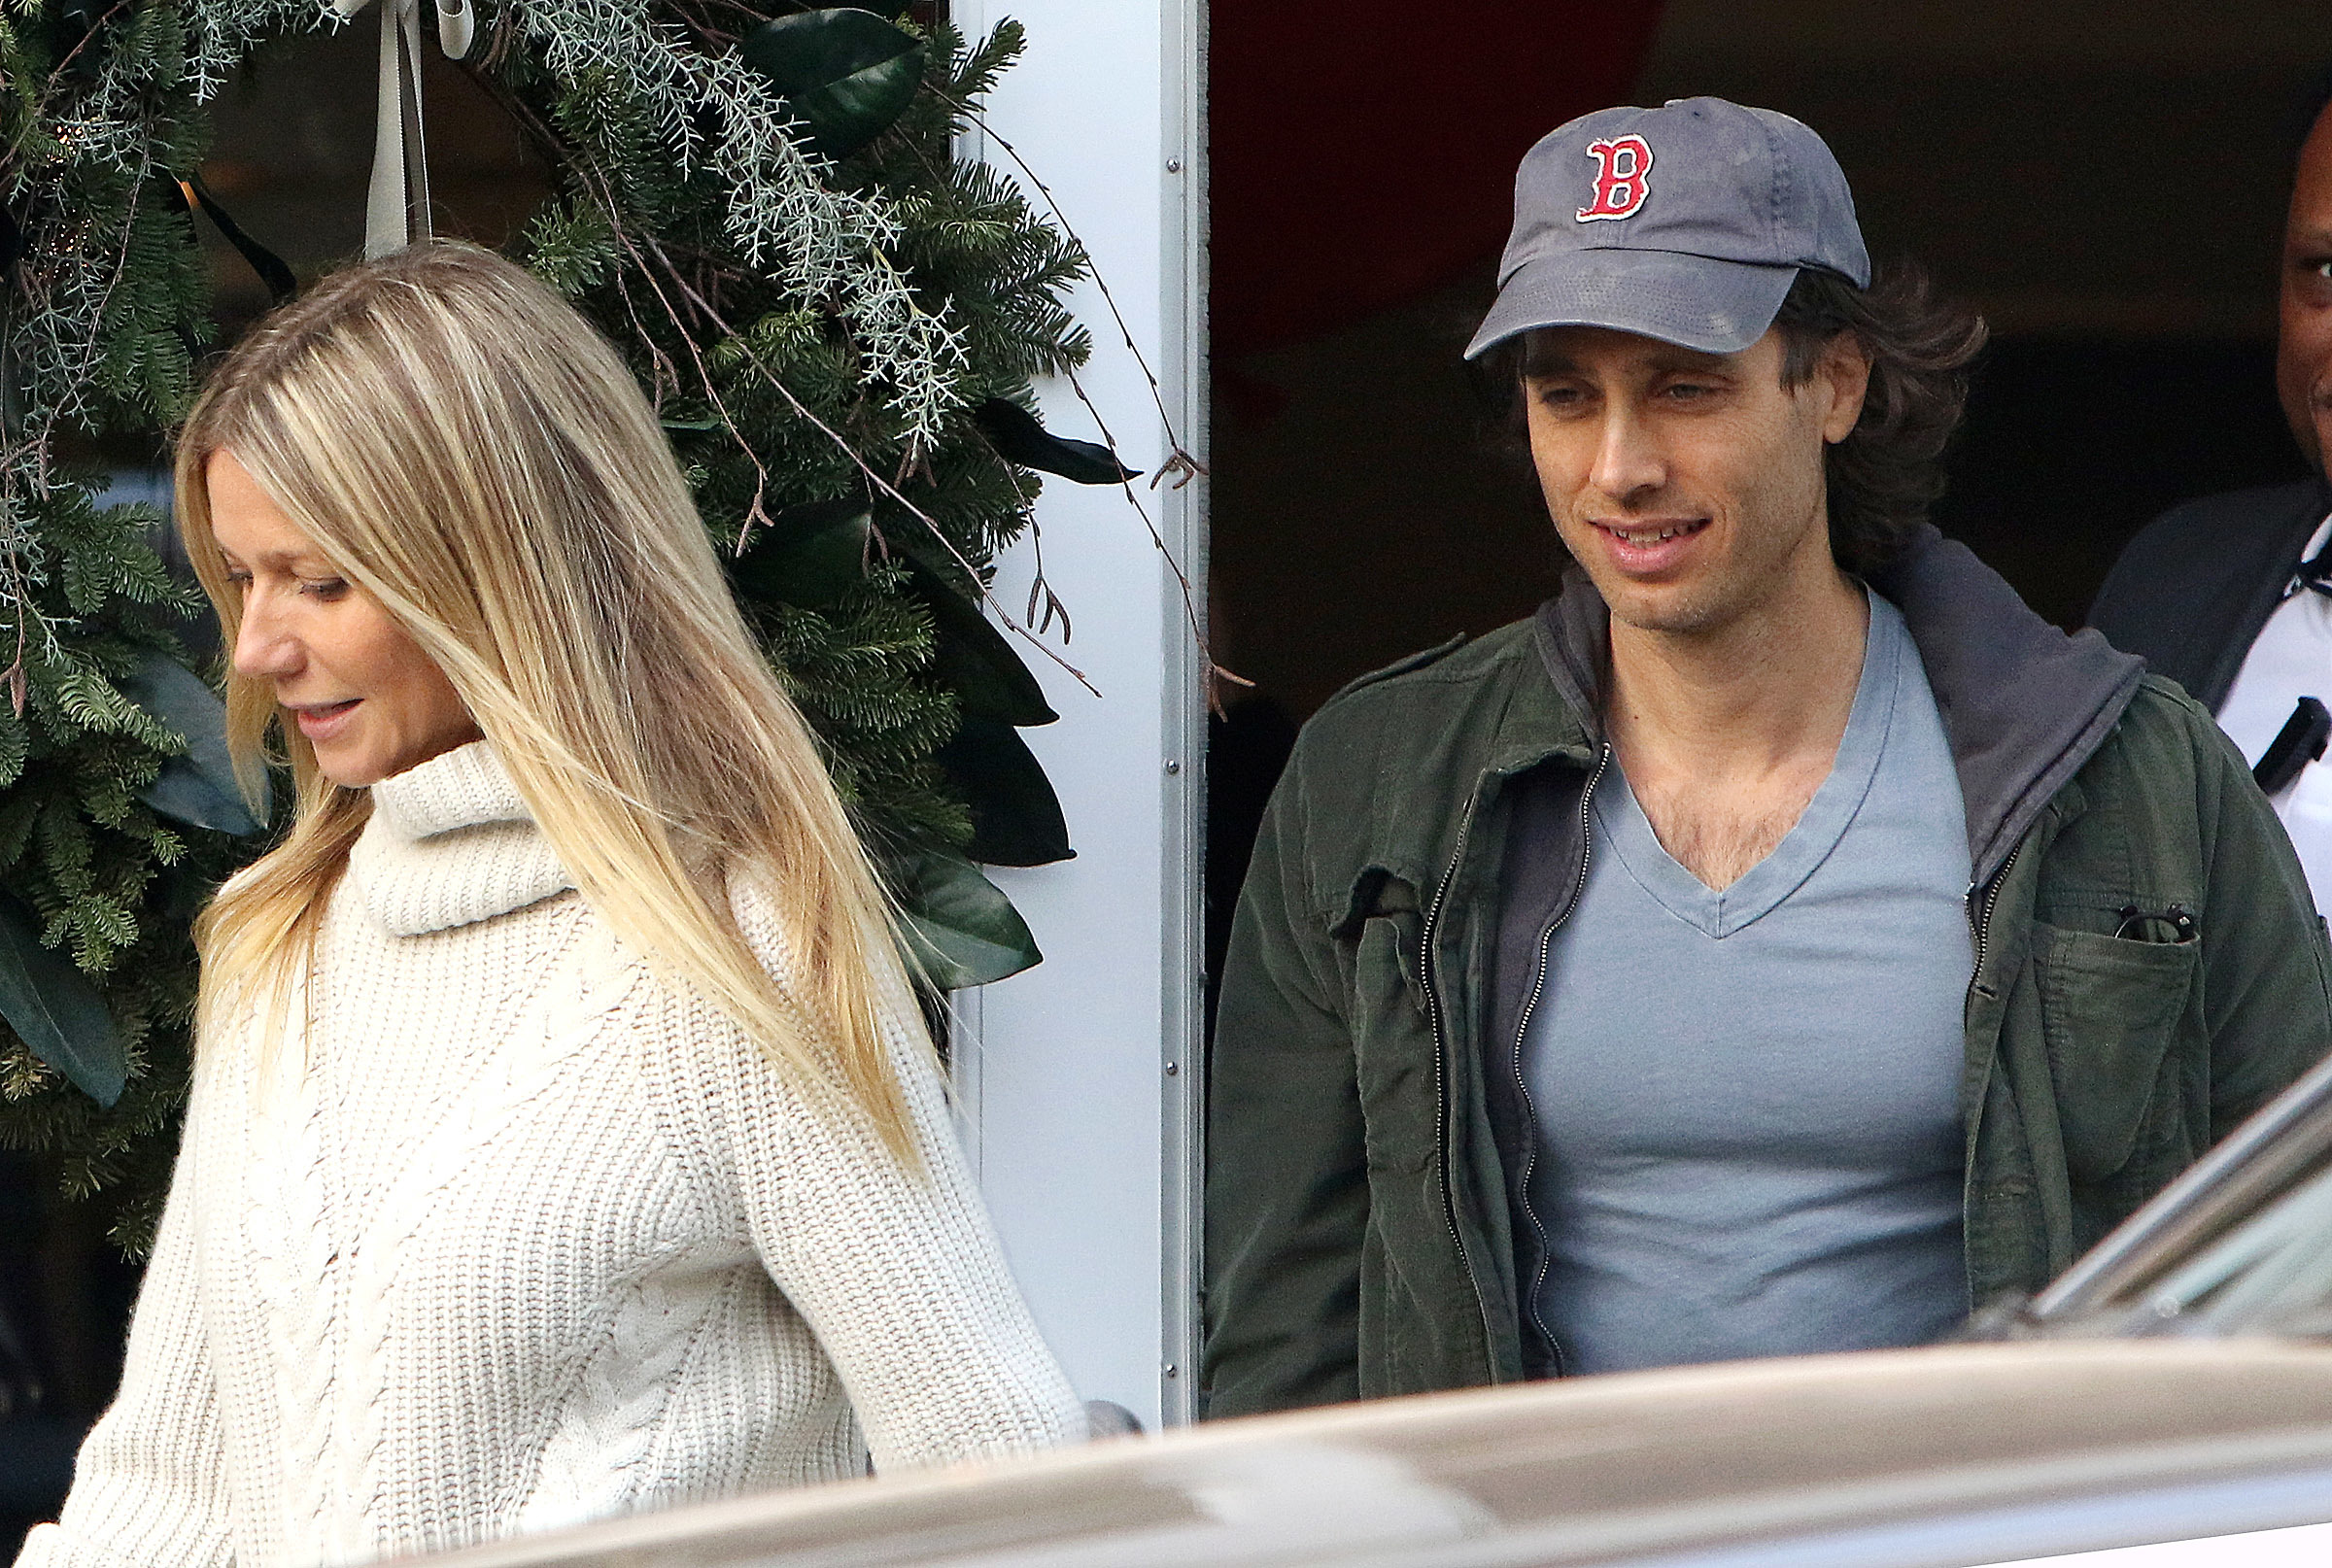 Gwyneth Paltrow and Brad Falchuk shop at the Brentwood Country Mart in Los Angeles on Dec. 11, 2016.